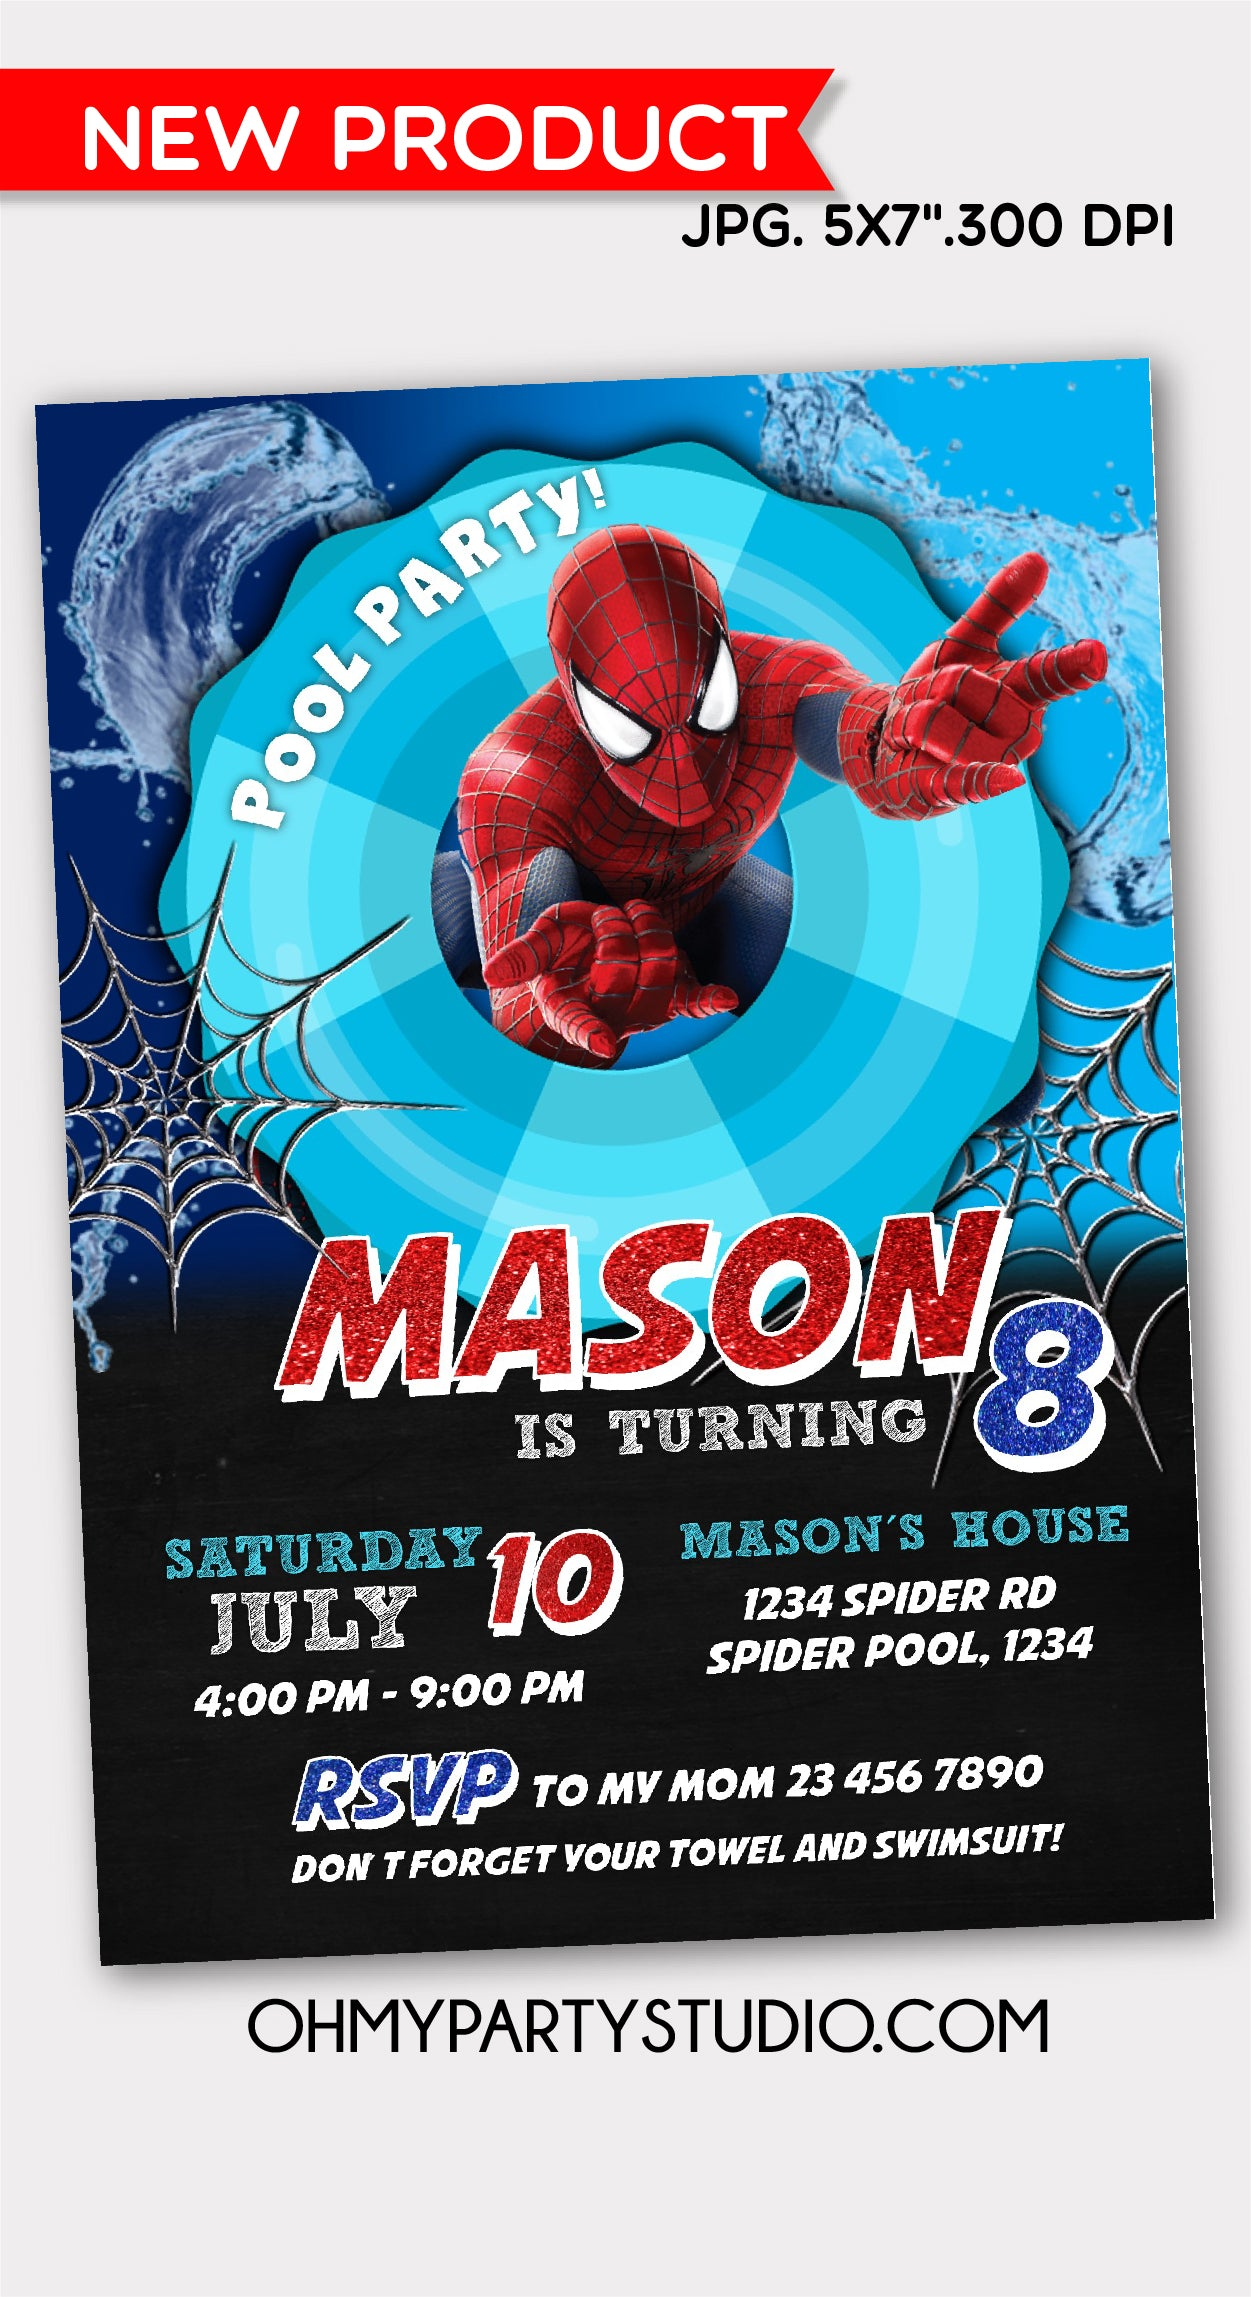 SPIDER-MAN POOL PARTY, SPIDER-MAN POOL PARTY INVITATION, SPIDERMAN POOL PARTY, SPIDERMAN POOL PARTY INVITATION, SPIDERMAN POOL PARTY INVITE, SPIDERMAN POOL PARTY INVITATIONS, SPIDERMAN PARTY, SPIDERMAN PARTY IDEAS, SPIDERMAN PARTY PRINTABLES, SPIDERMAN INVITE, SPIDERMAN DIGITAL INVITATION